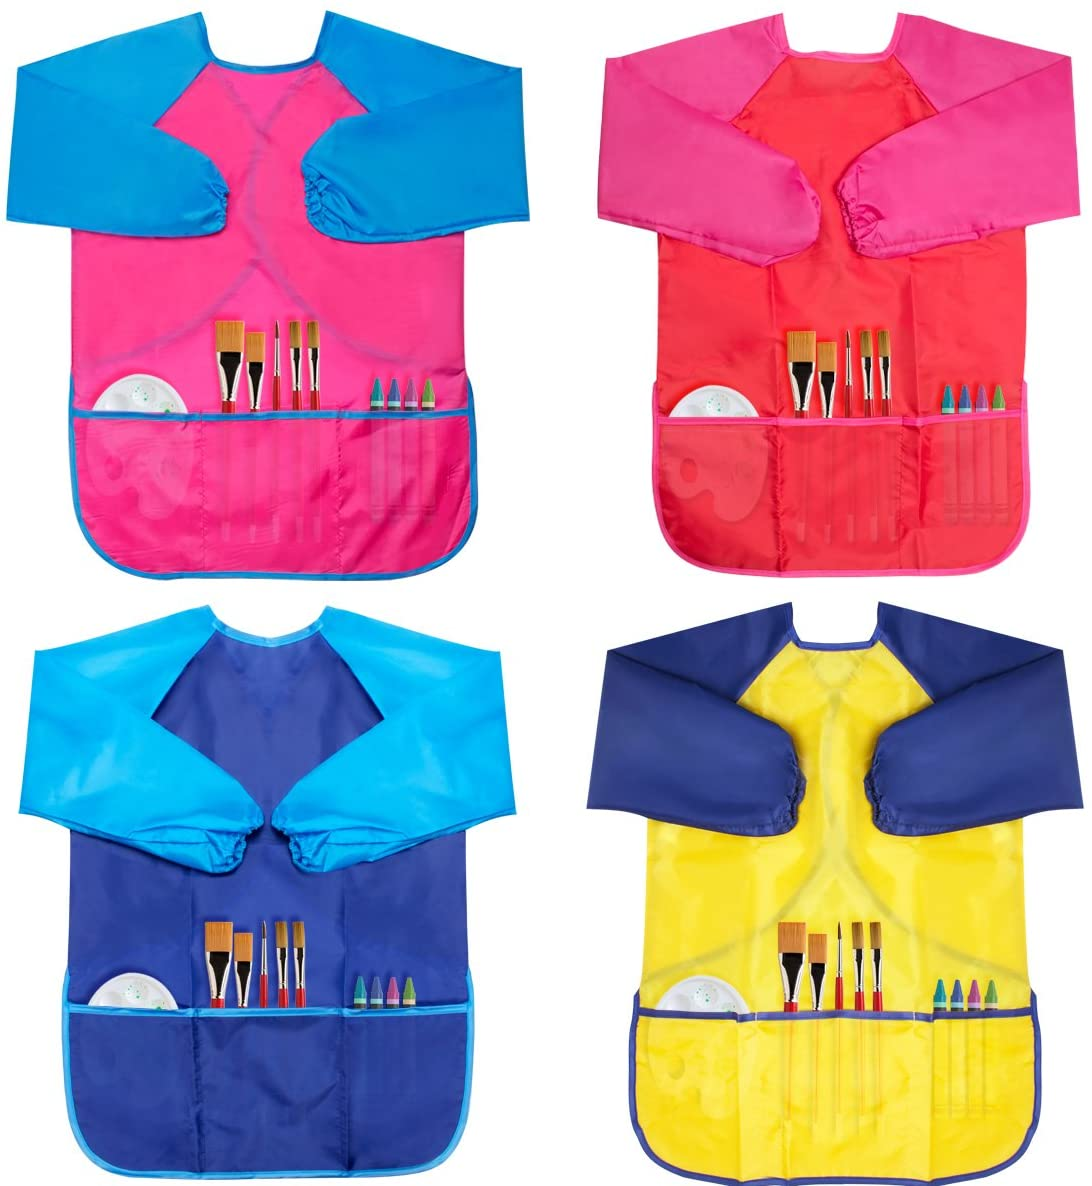 Colorful Smocks